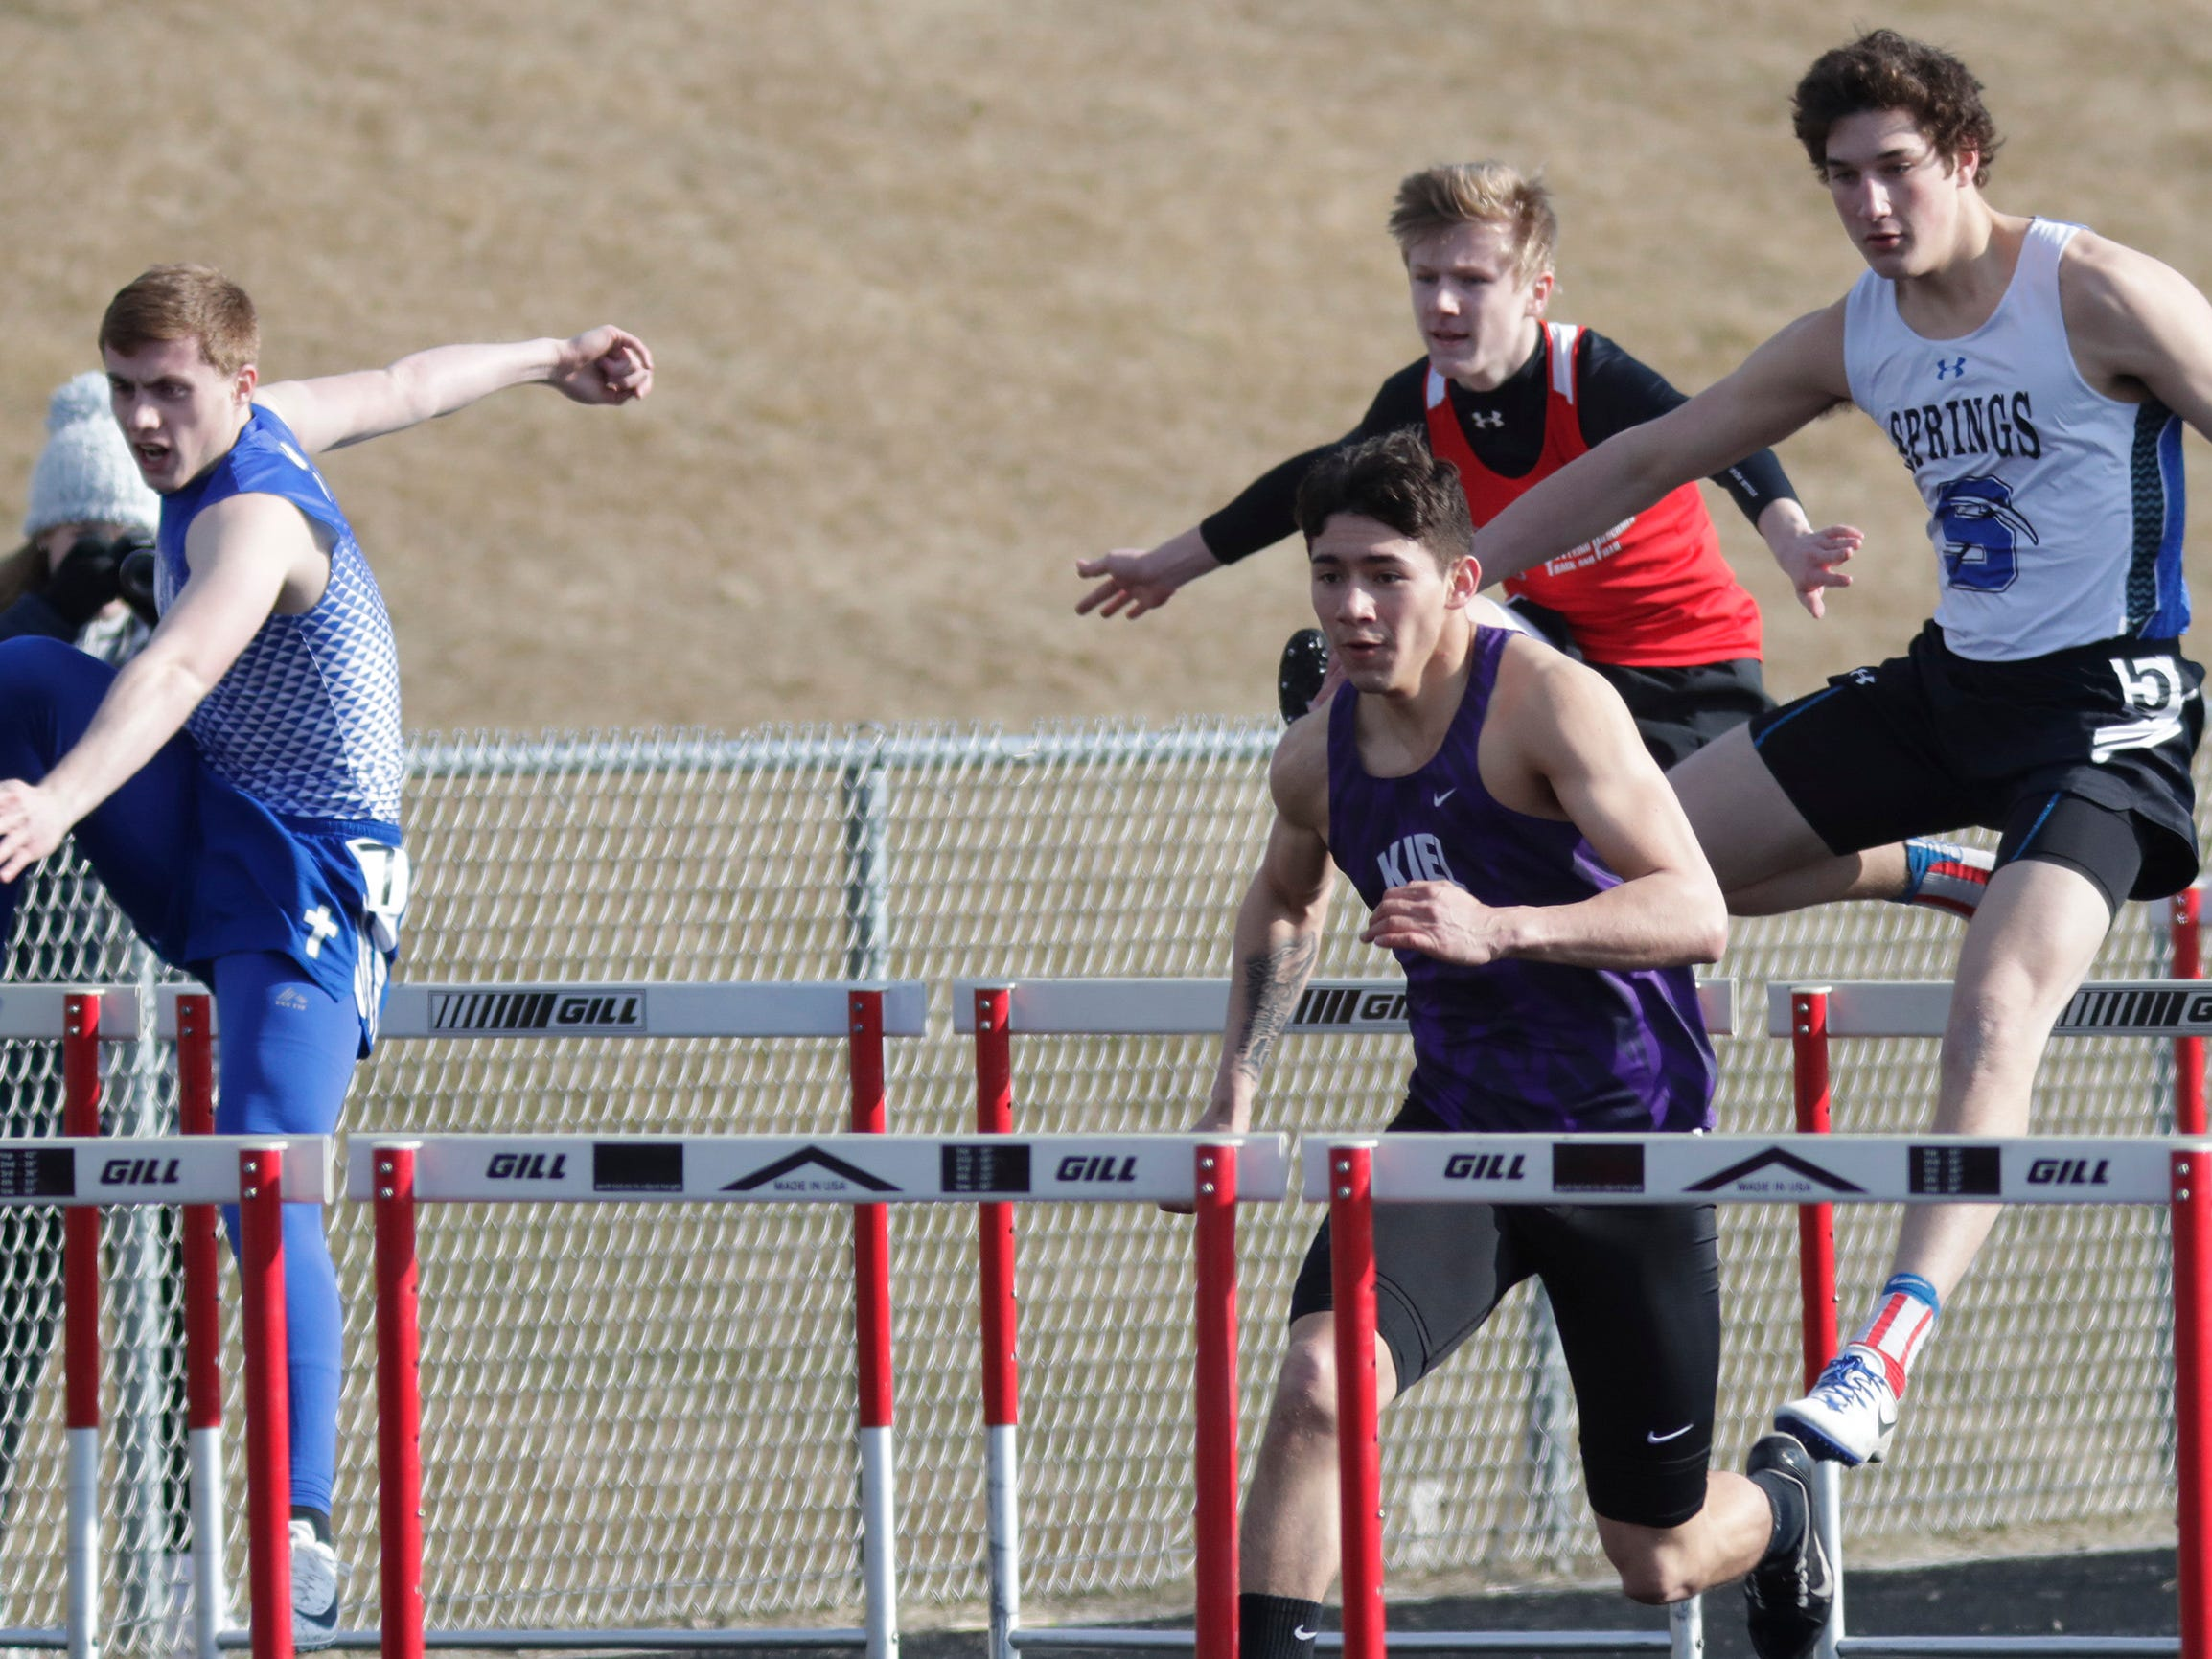 A scene from the 110 high hurdles at the Flying Dutchmen Invite, Friday, April 5, 2019, in Oostburg, Wis.